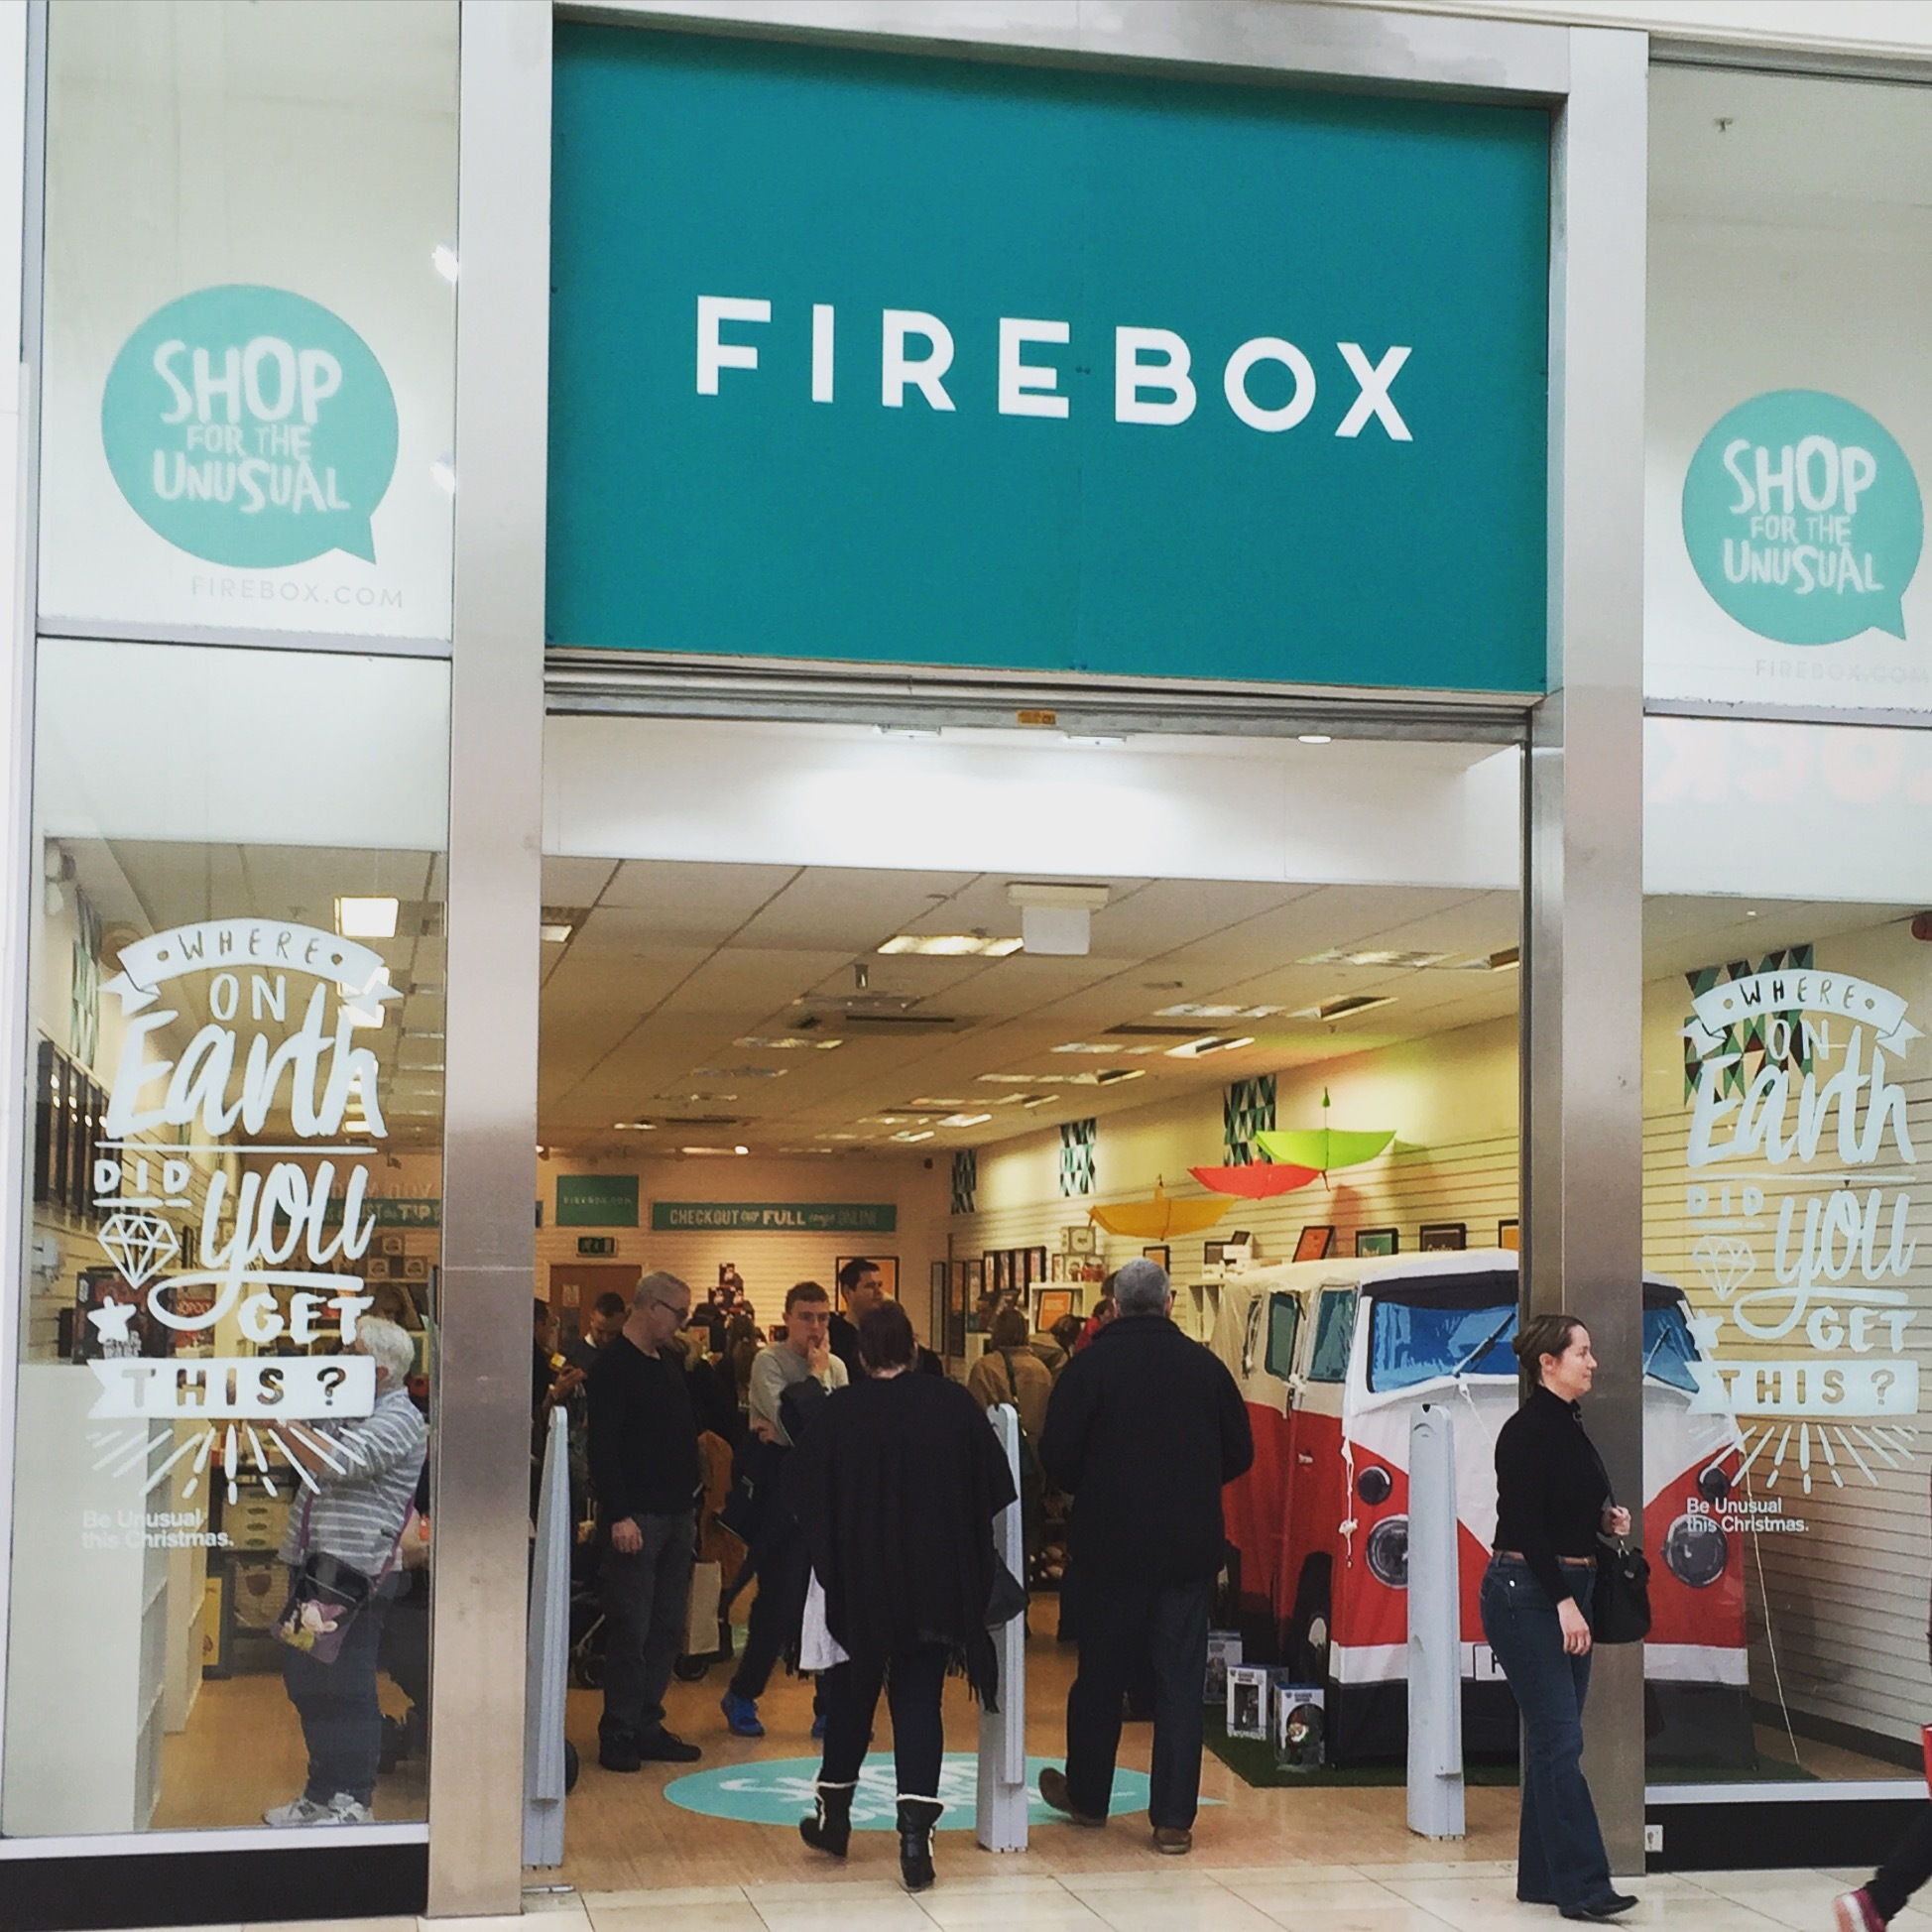 Firebox pop-up shop